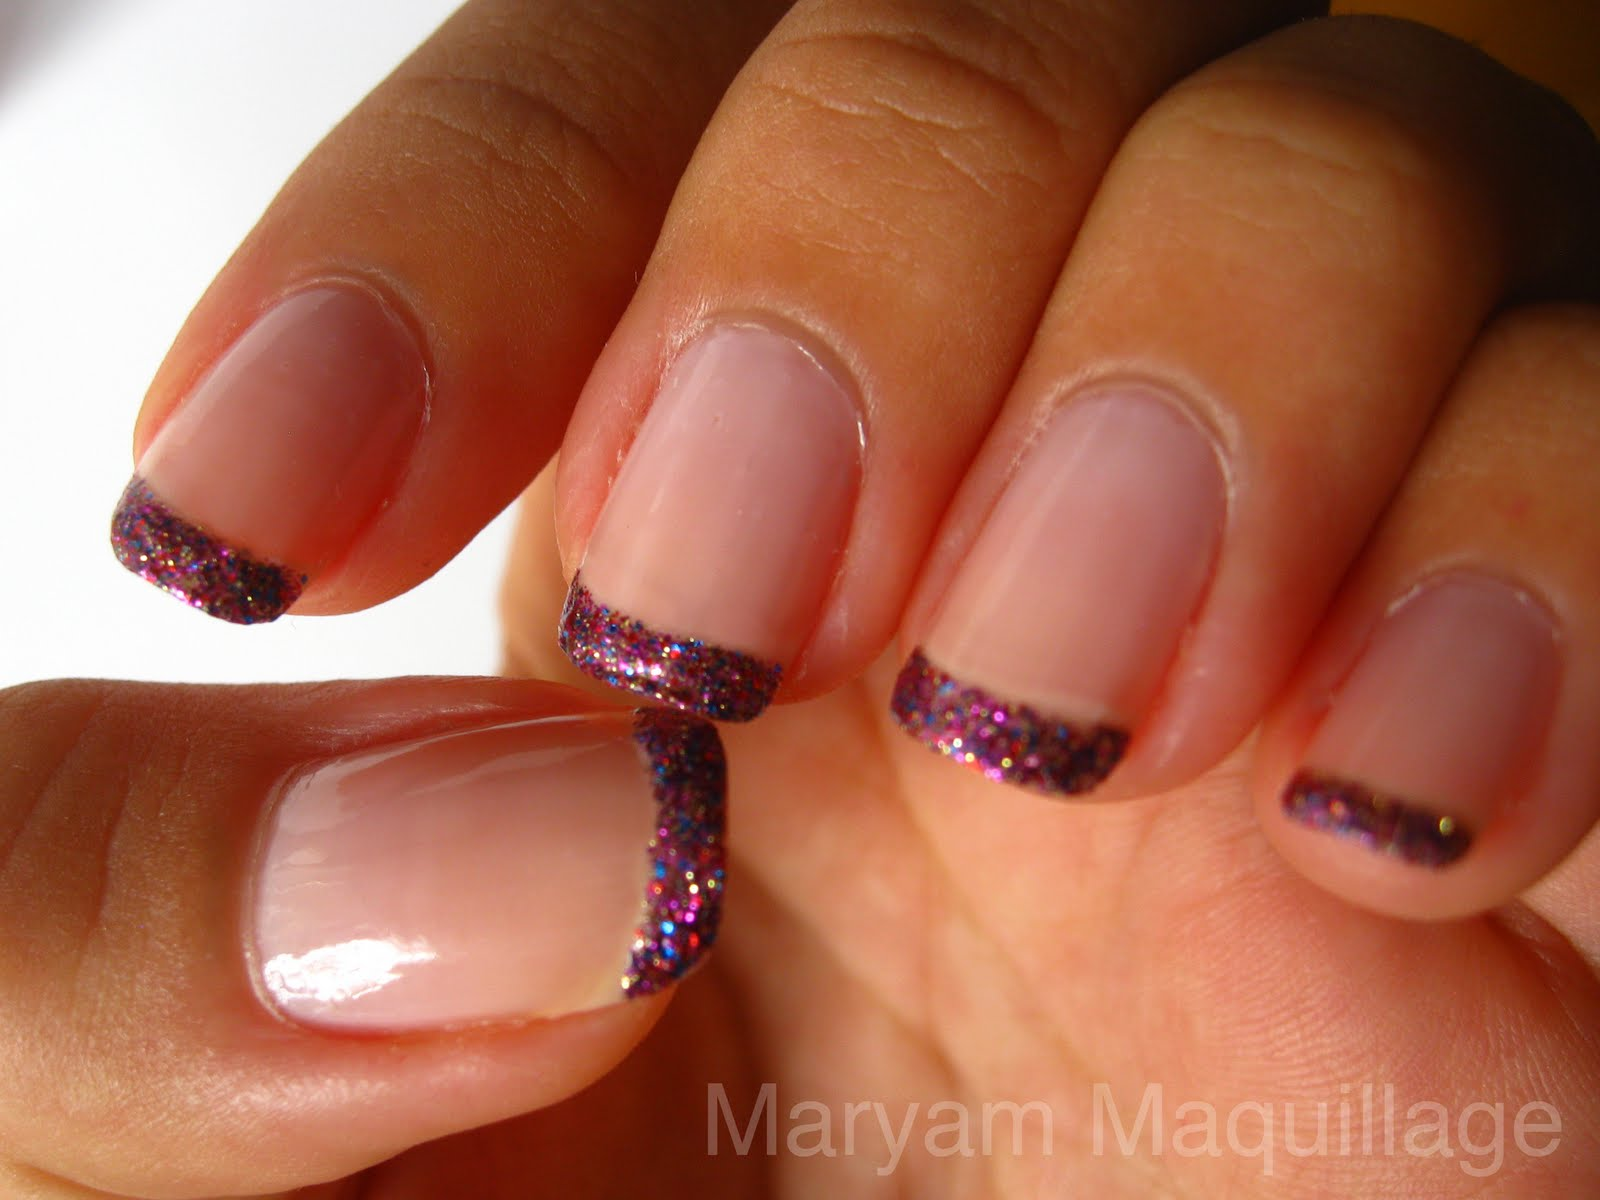 maryam maquillage rockstar pink nail tips